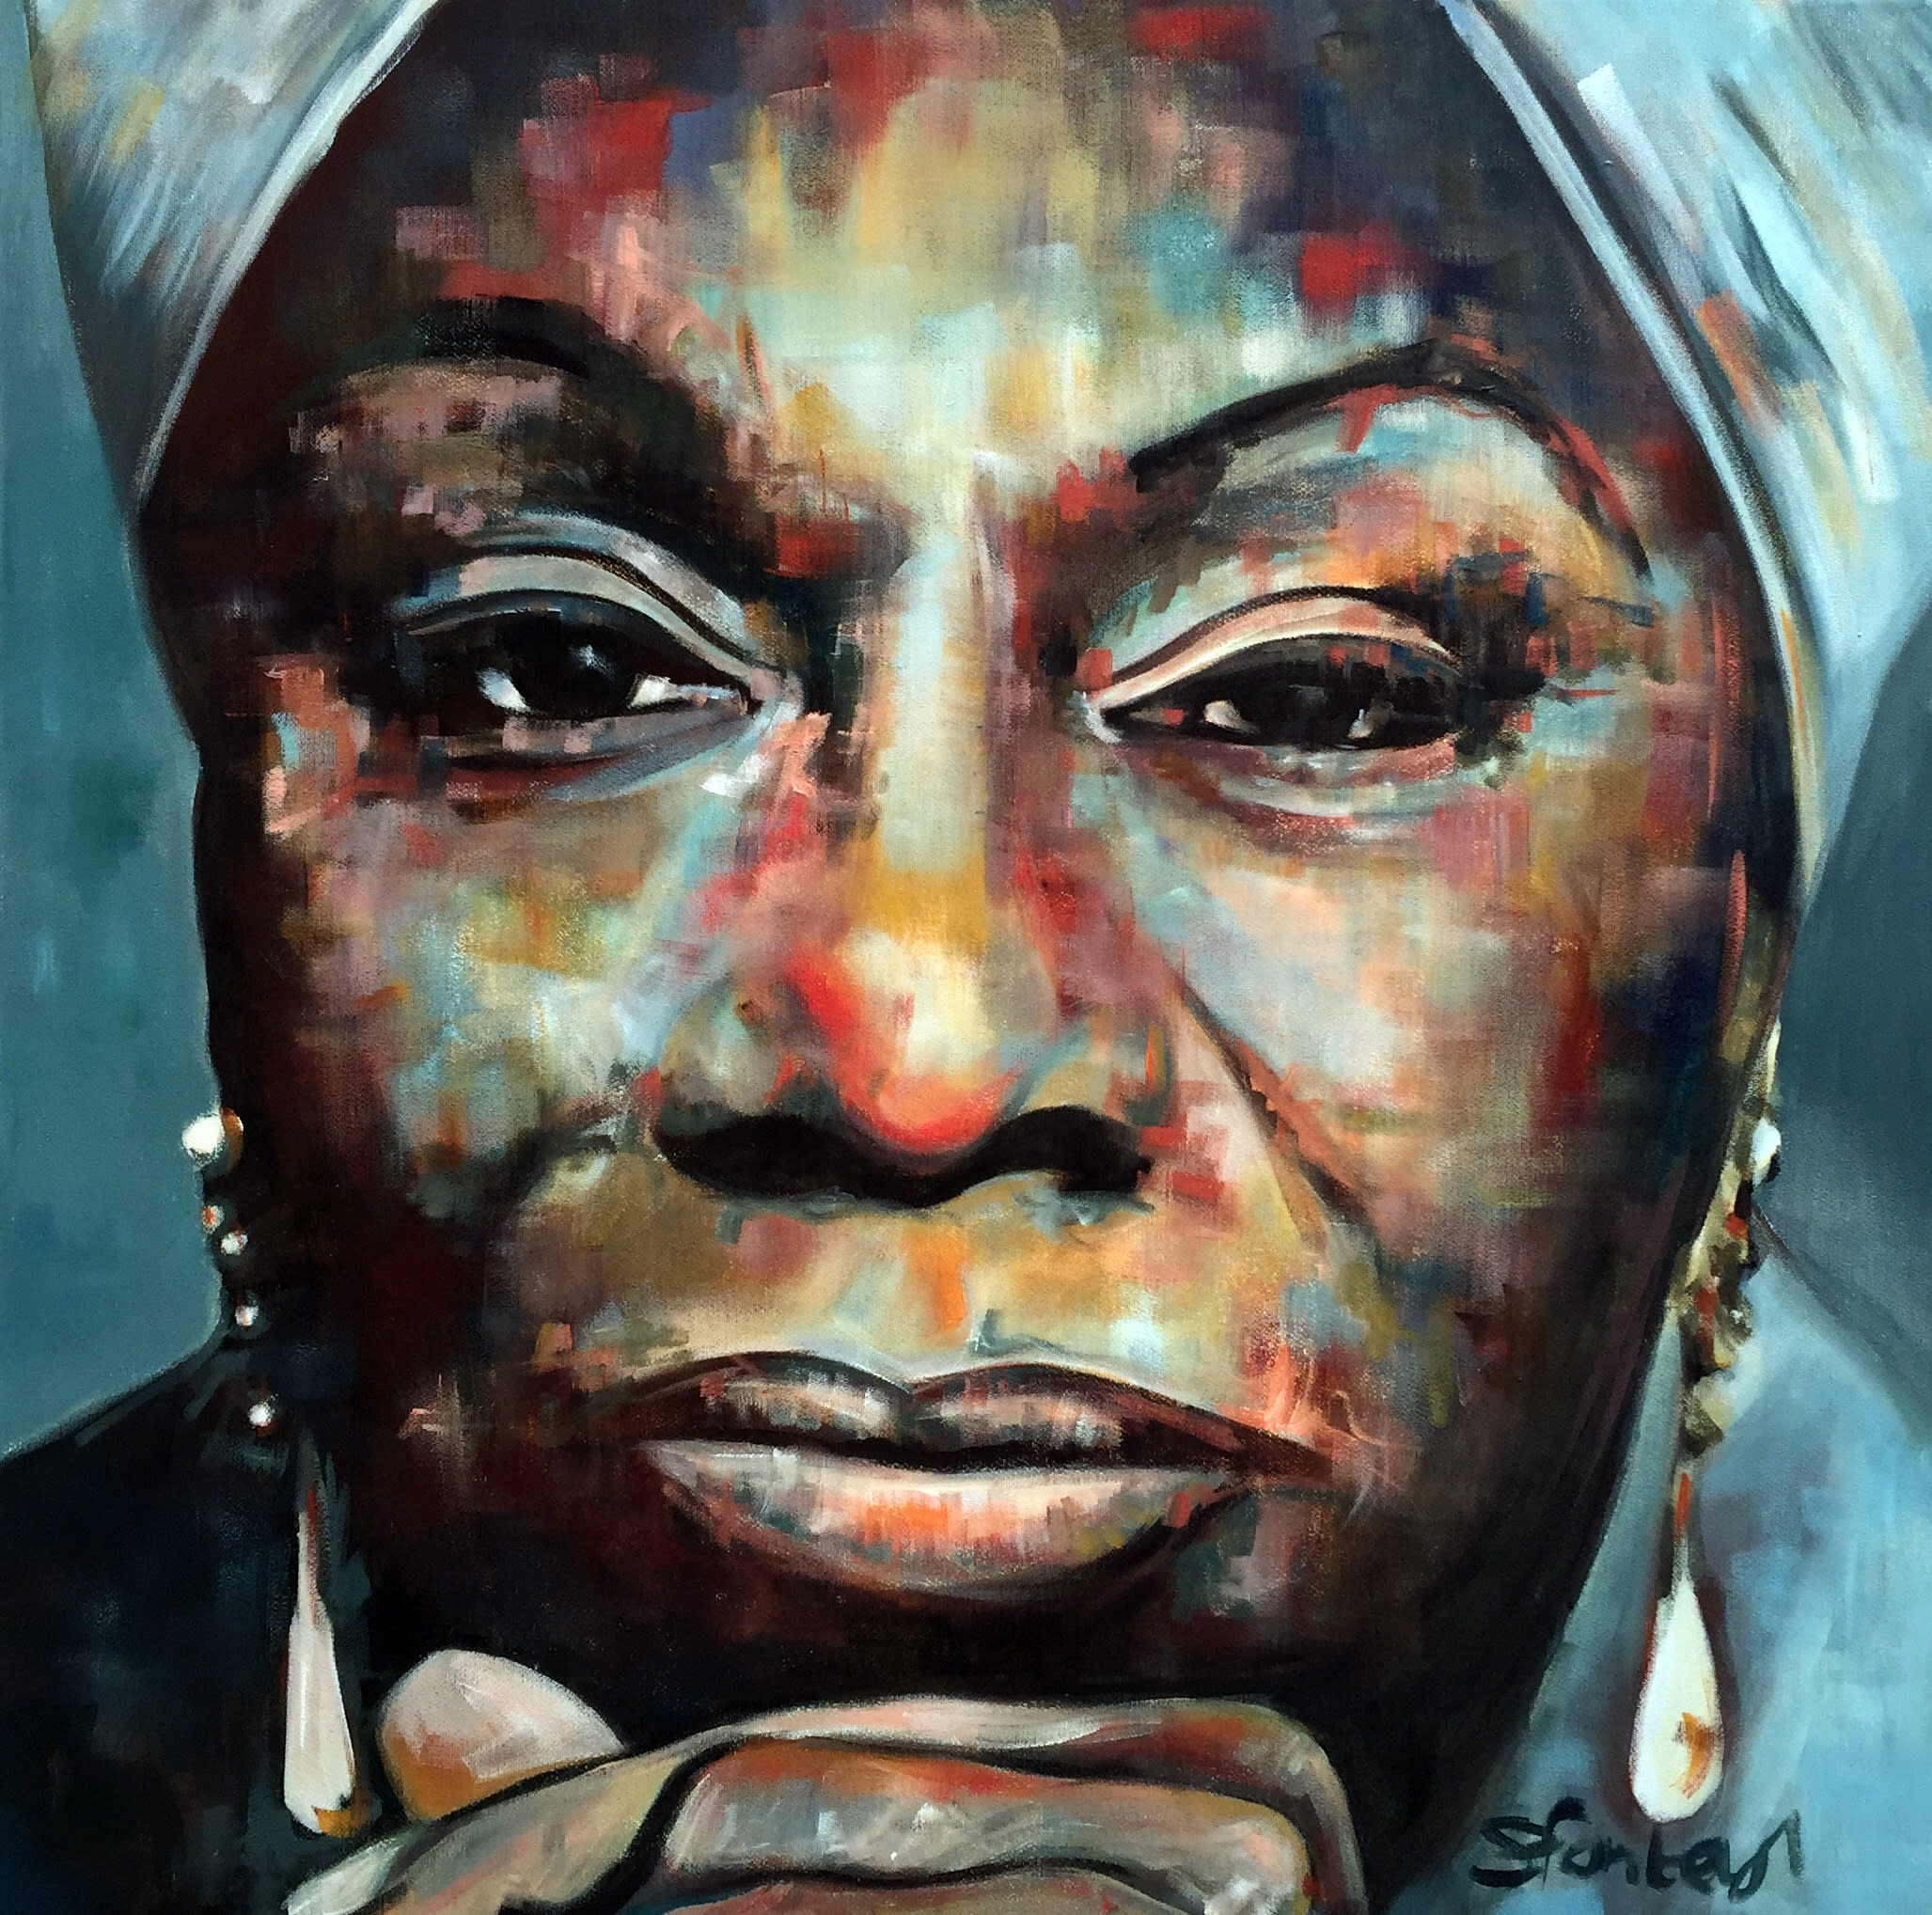 Nina simone by steph viiiok